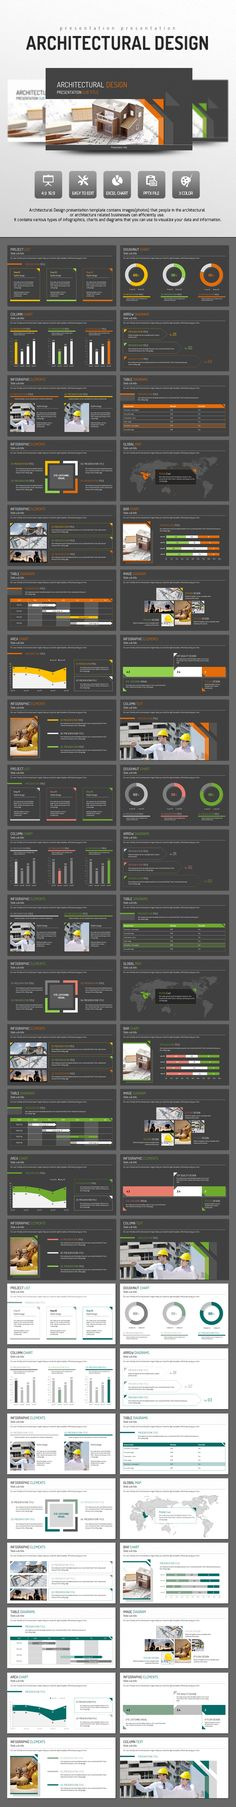 MARK03-Powerpoint Template (v20) Presentation design - powerpoint proposal template